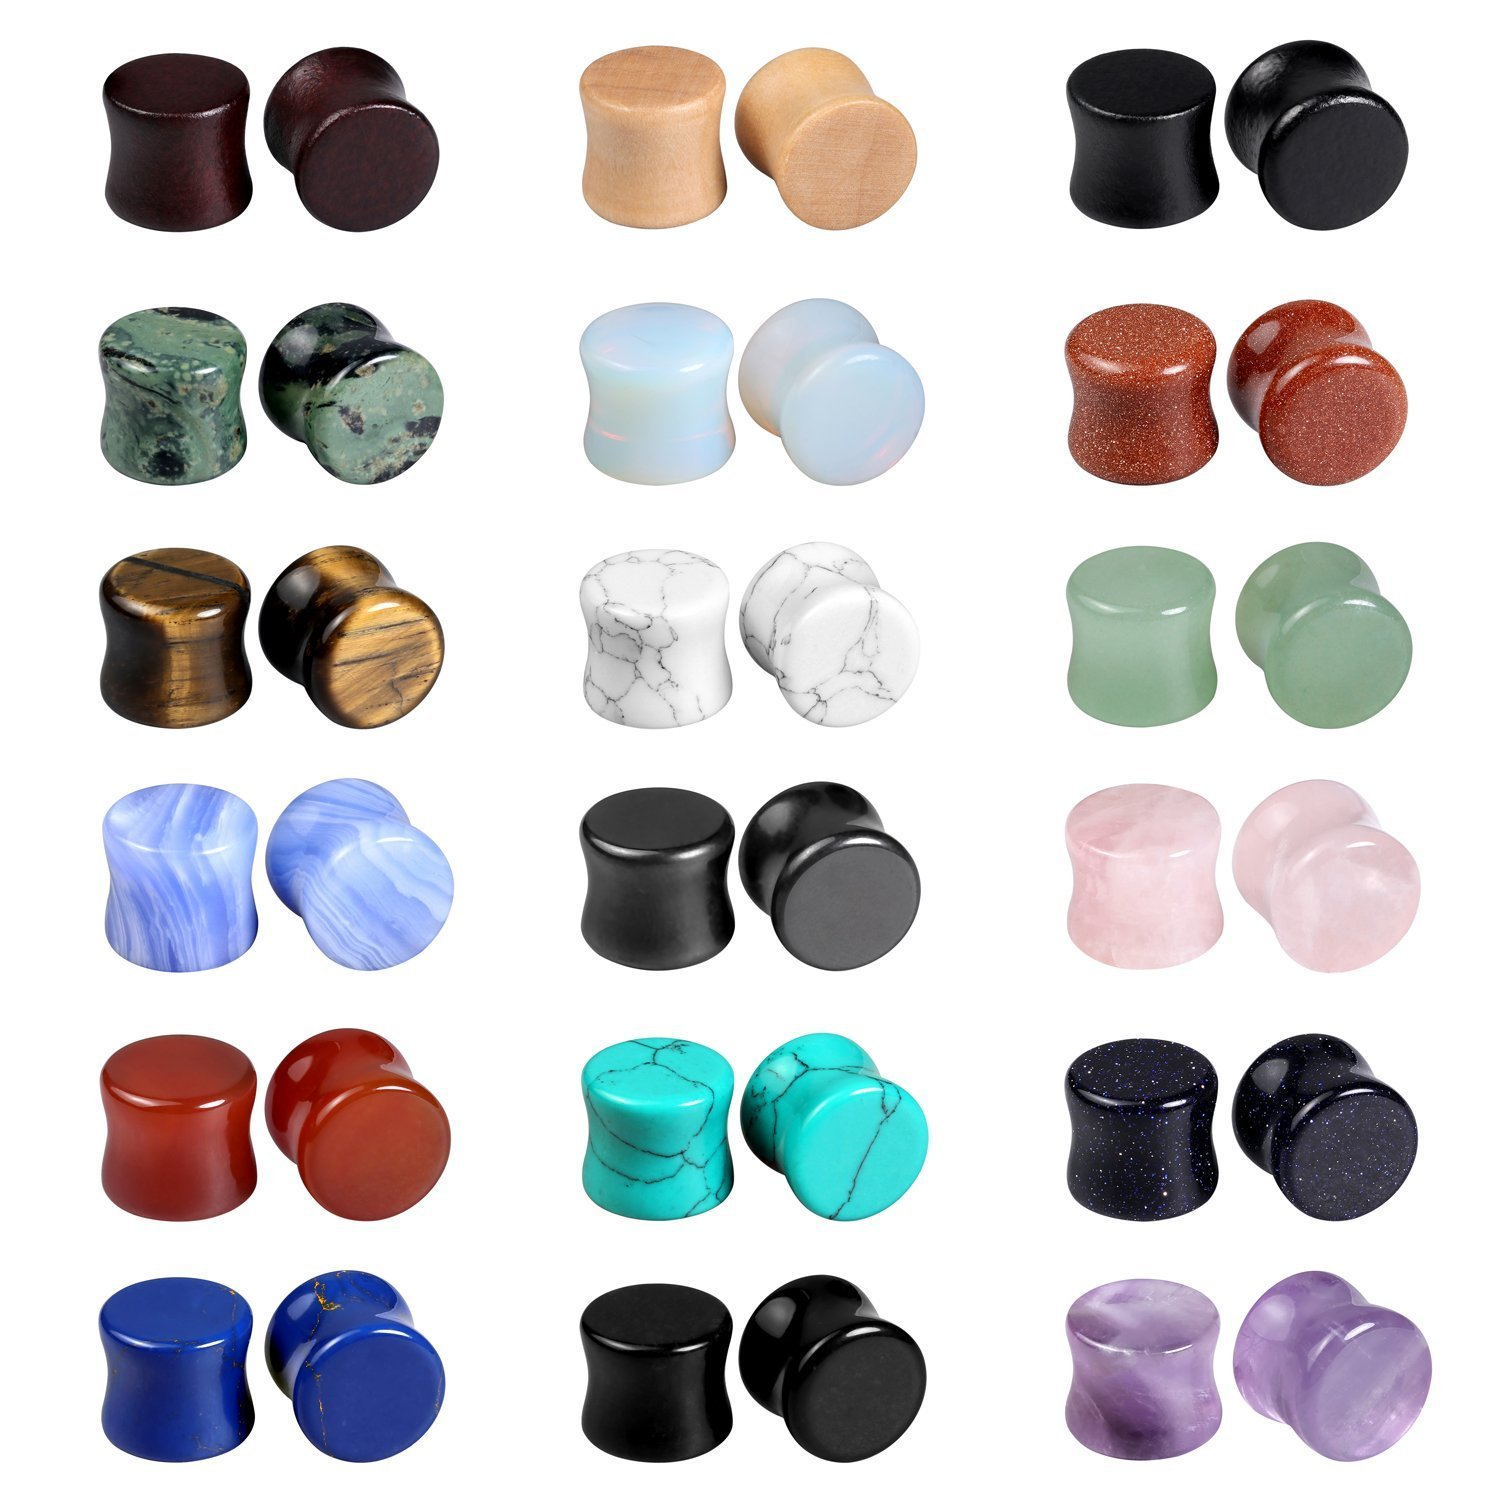 Evevil Wood Mixed Stone Plugs 18 Pairs/36 Pieces Set 00g Ear Plugs Ear Tunnels Ear Gauges Double Flared Ear Expander Stretcher Set (10mm)